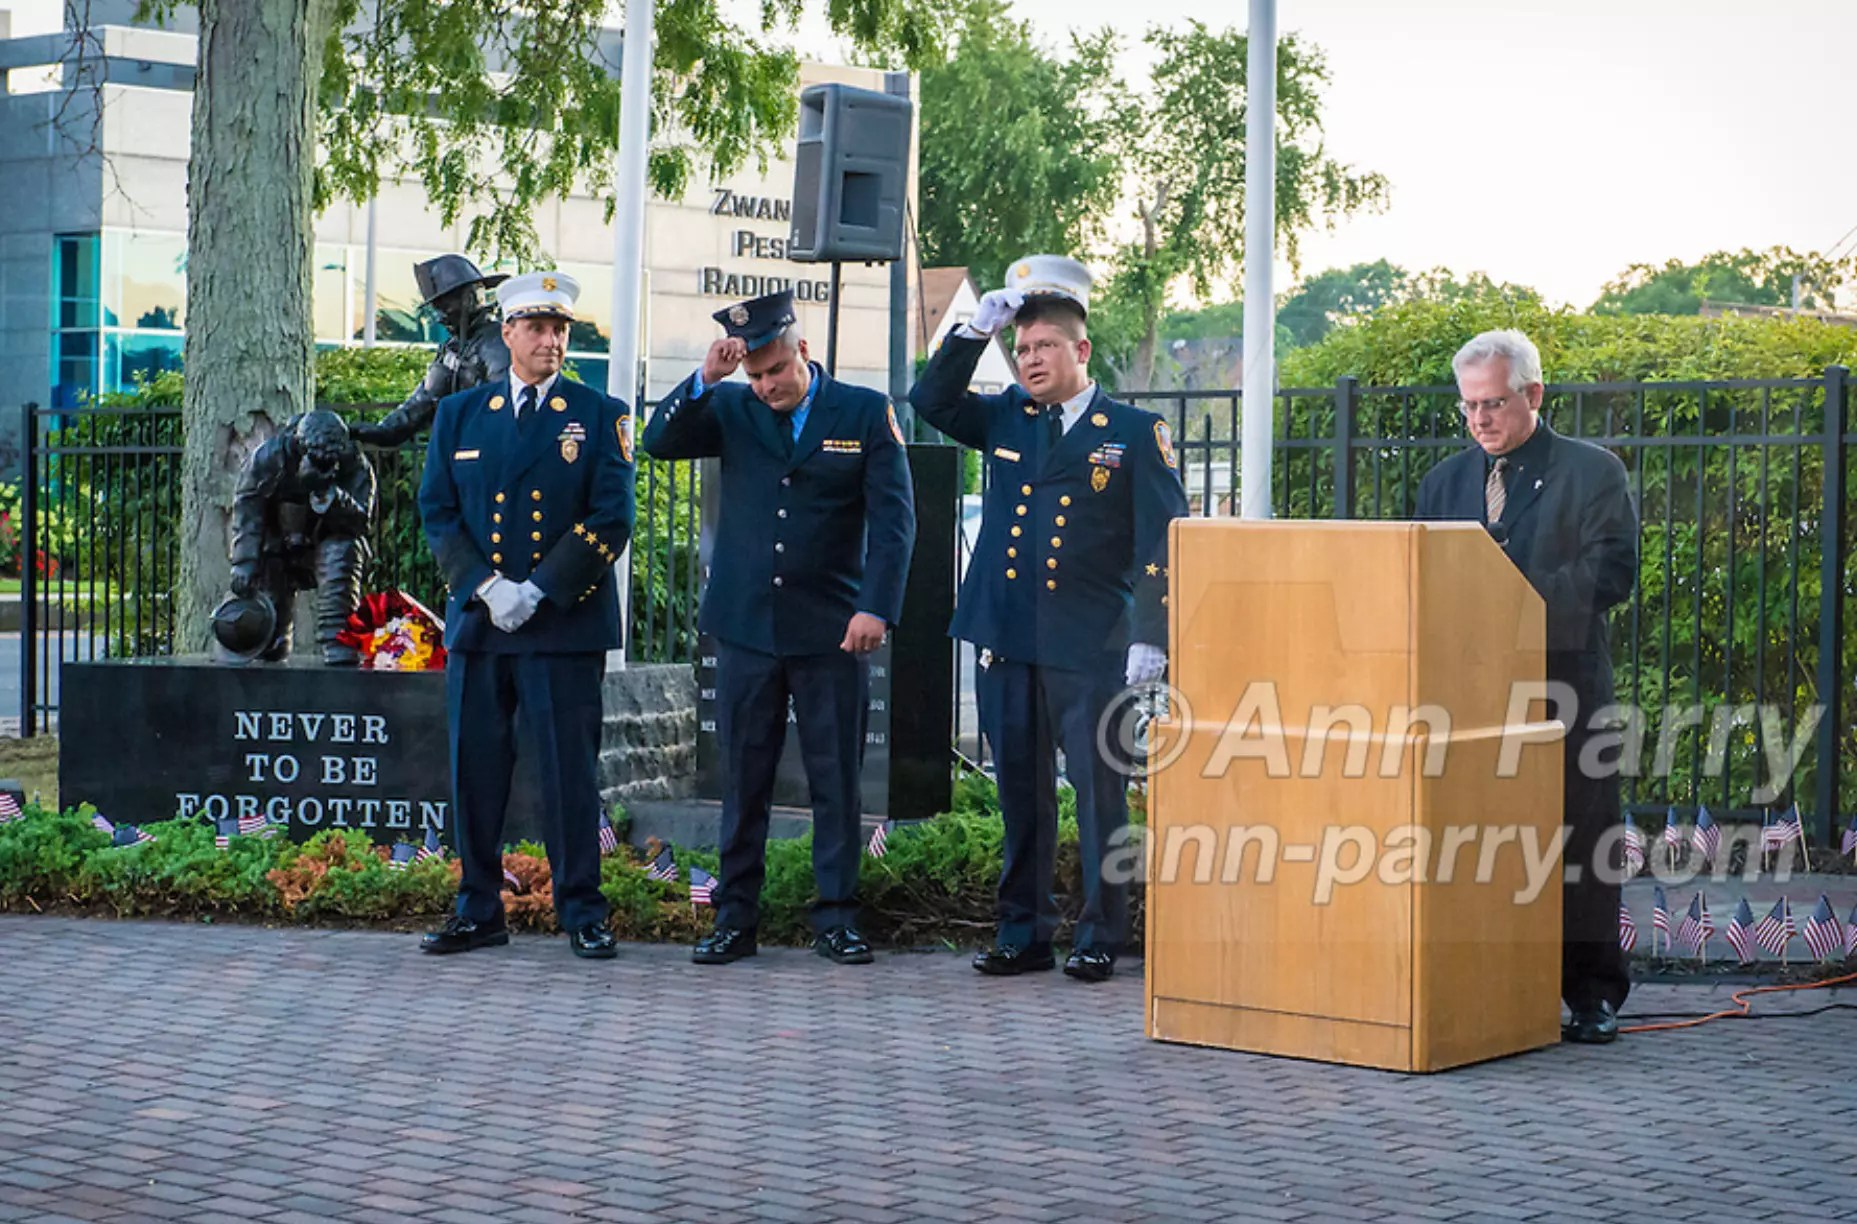 Merrick, NY, USA. 11th Sept. 2015. At podium, Deacon JOE ZUBROVICH, of Curé of Ars Roman Catholic Church in Merrick, begins invocation as 3 Merrick and NYC firefigthters, next to 9/11 statue momument, start to remove their dress uniform white caps during Merrick Memorial Ceremony for Merrick volunteer firefighters and residents who died due to 9/11 terrorist attack at NYC Twin Towers. Ex-Chief Ronnie E. Gies, of Merrick F.D. and FDNY Squad 288, and Ex-Captain Brian E. Sweeney, of Merrick F.D. and FDNY Rescue 1, died responding to the attacks on September 11, 2001.